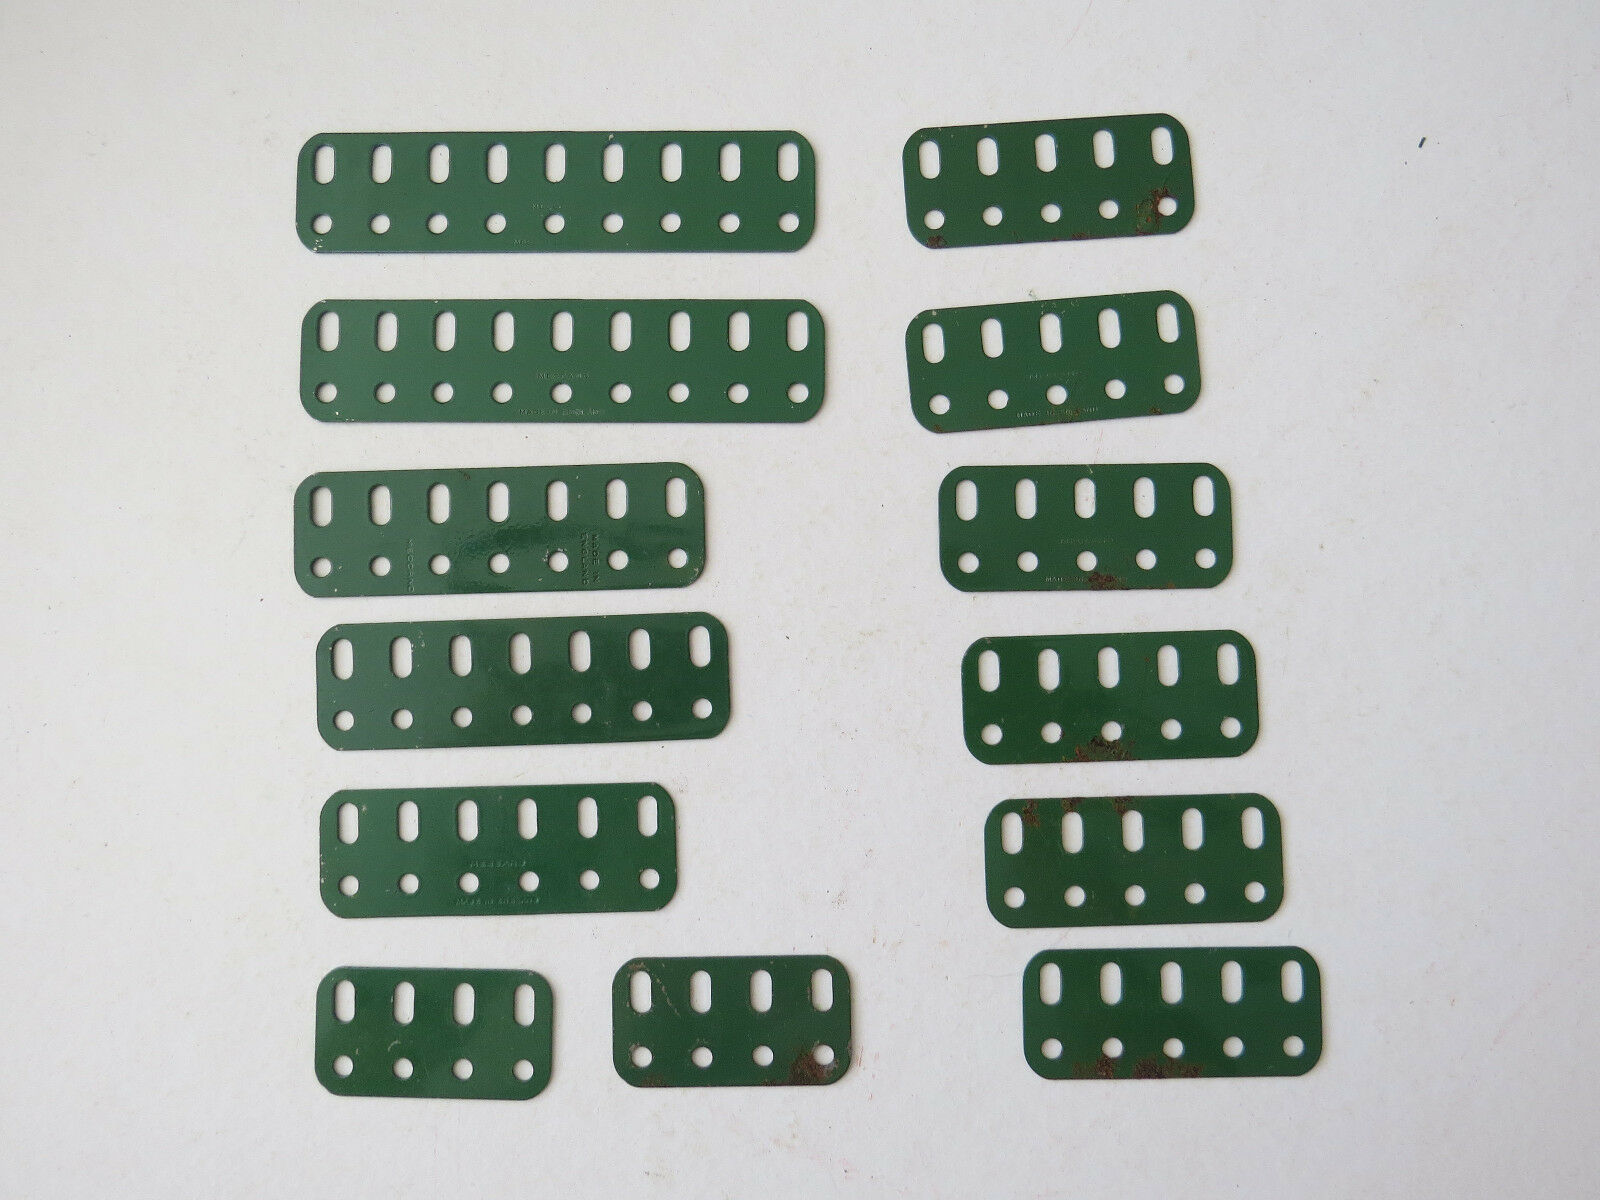 Meccano Flat Girders. 2  - 4.5  Various x 13. Medium Green Original Vintage